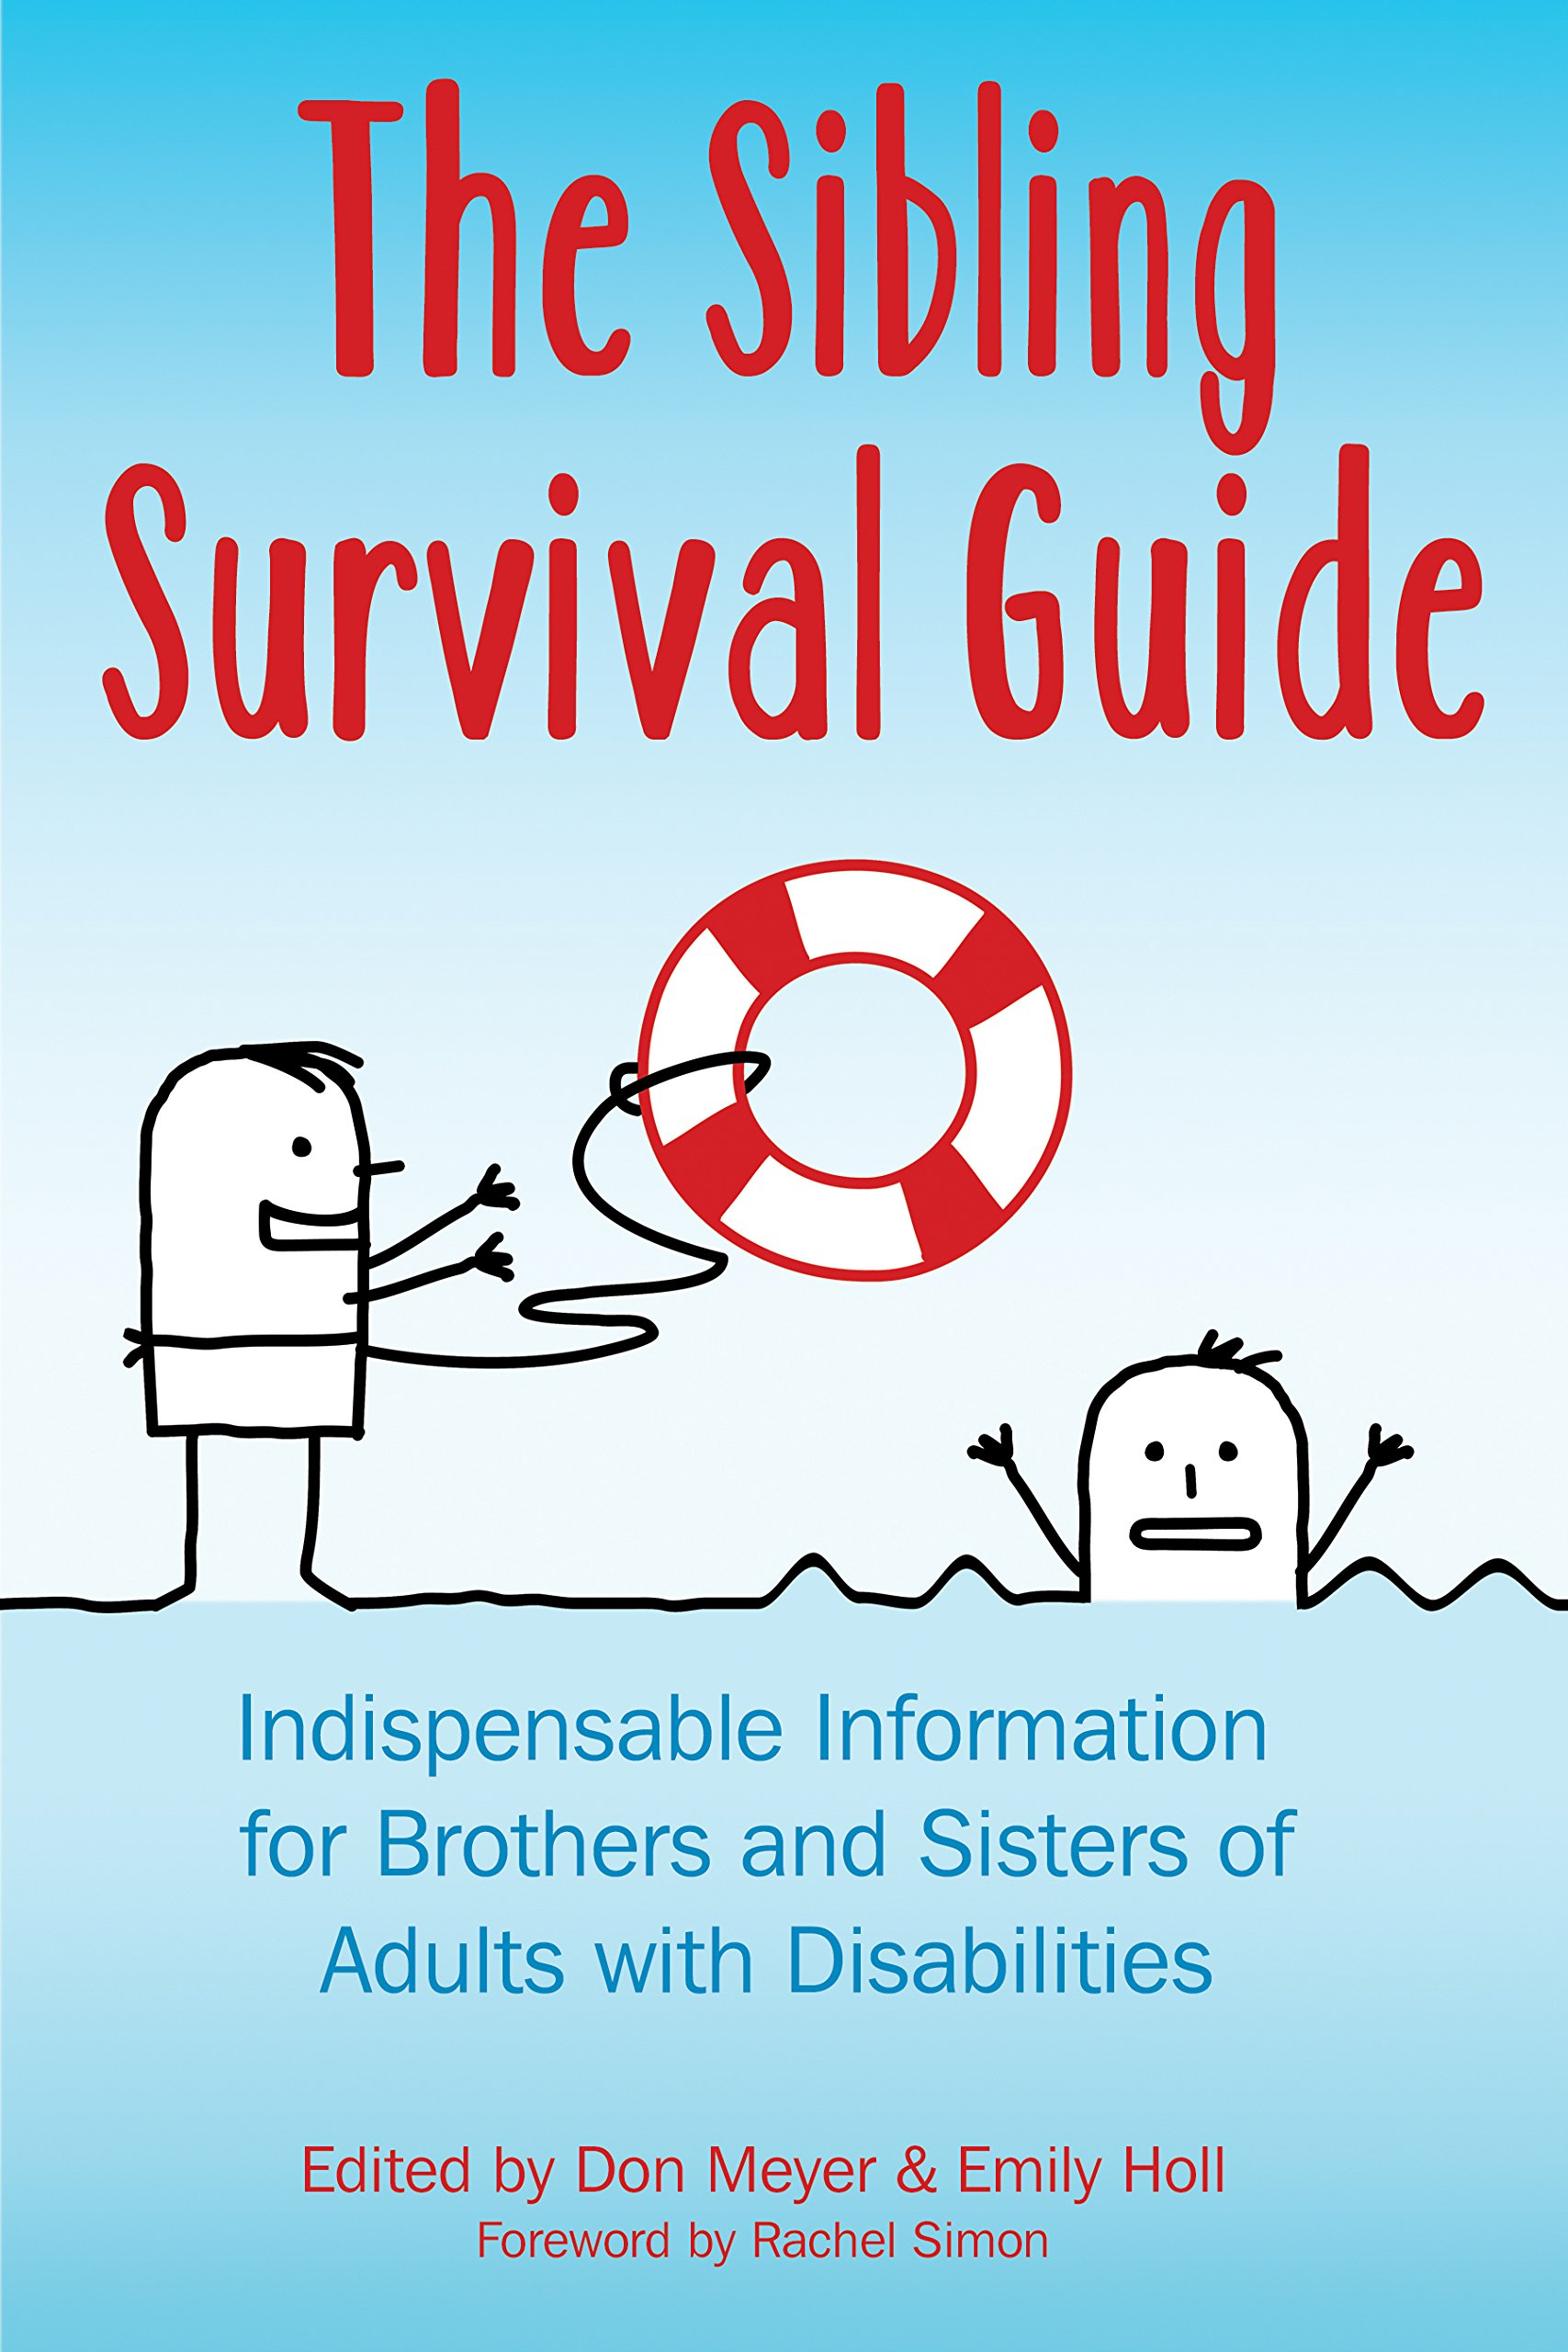 Download The Sibling Survival Guide: Indispensable Information for Brothers and Sisters of Adults With Disabilities ebook